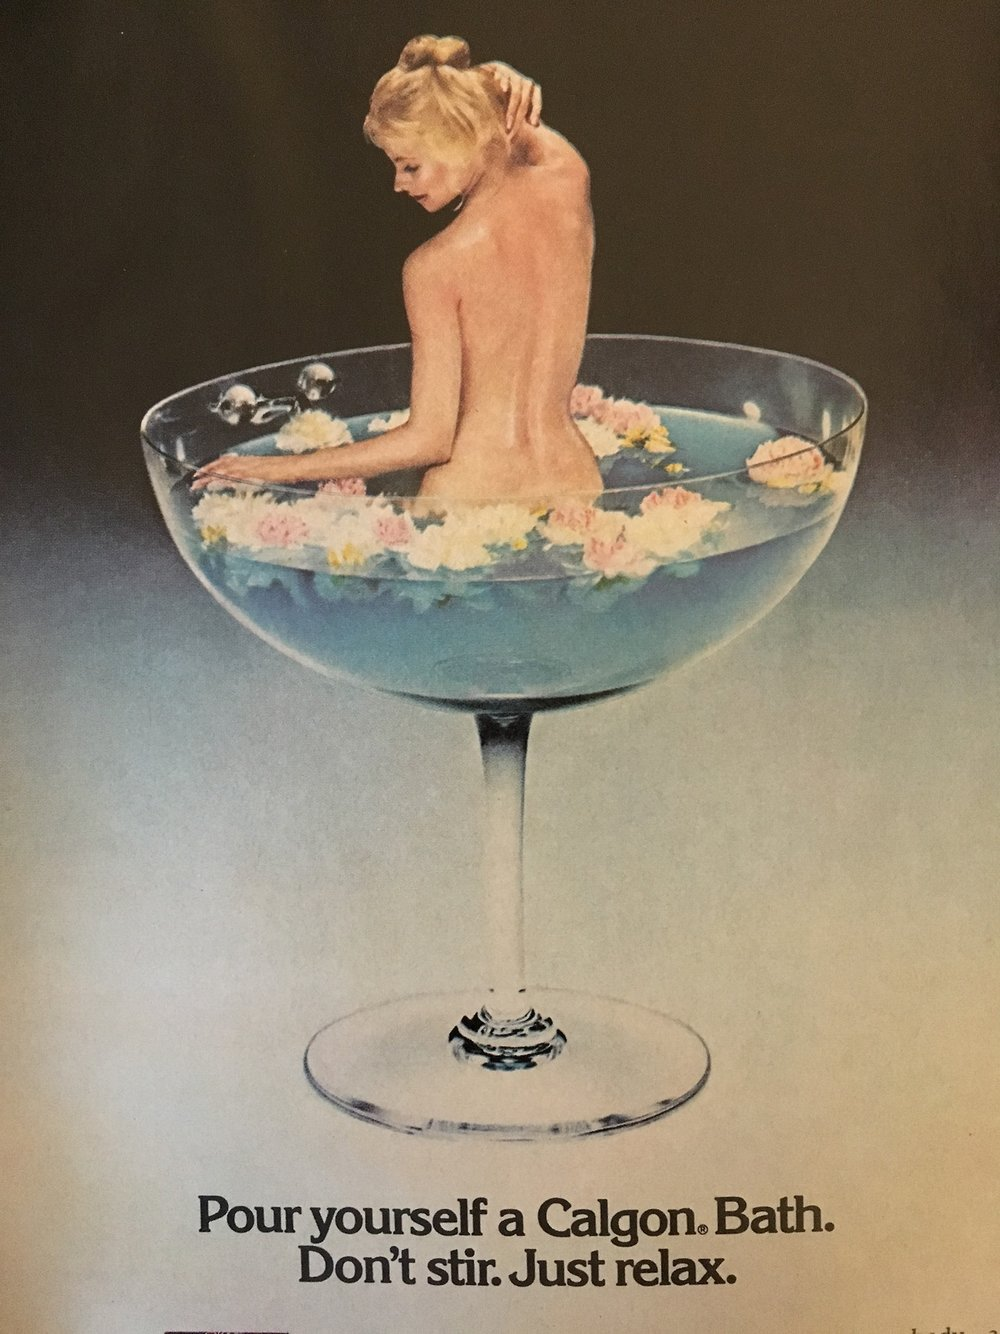 Pour yourself a Calgon Bath. Don't stir. Just relax. Mademoiselle. May 1976. Around this era, you started to see a LOT of couples resorts that had those champagne bathtubs. I think this ad for Calgon may have been inspired by those.